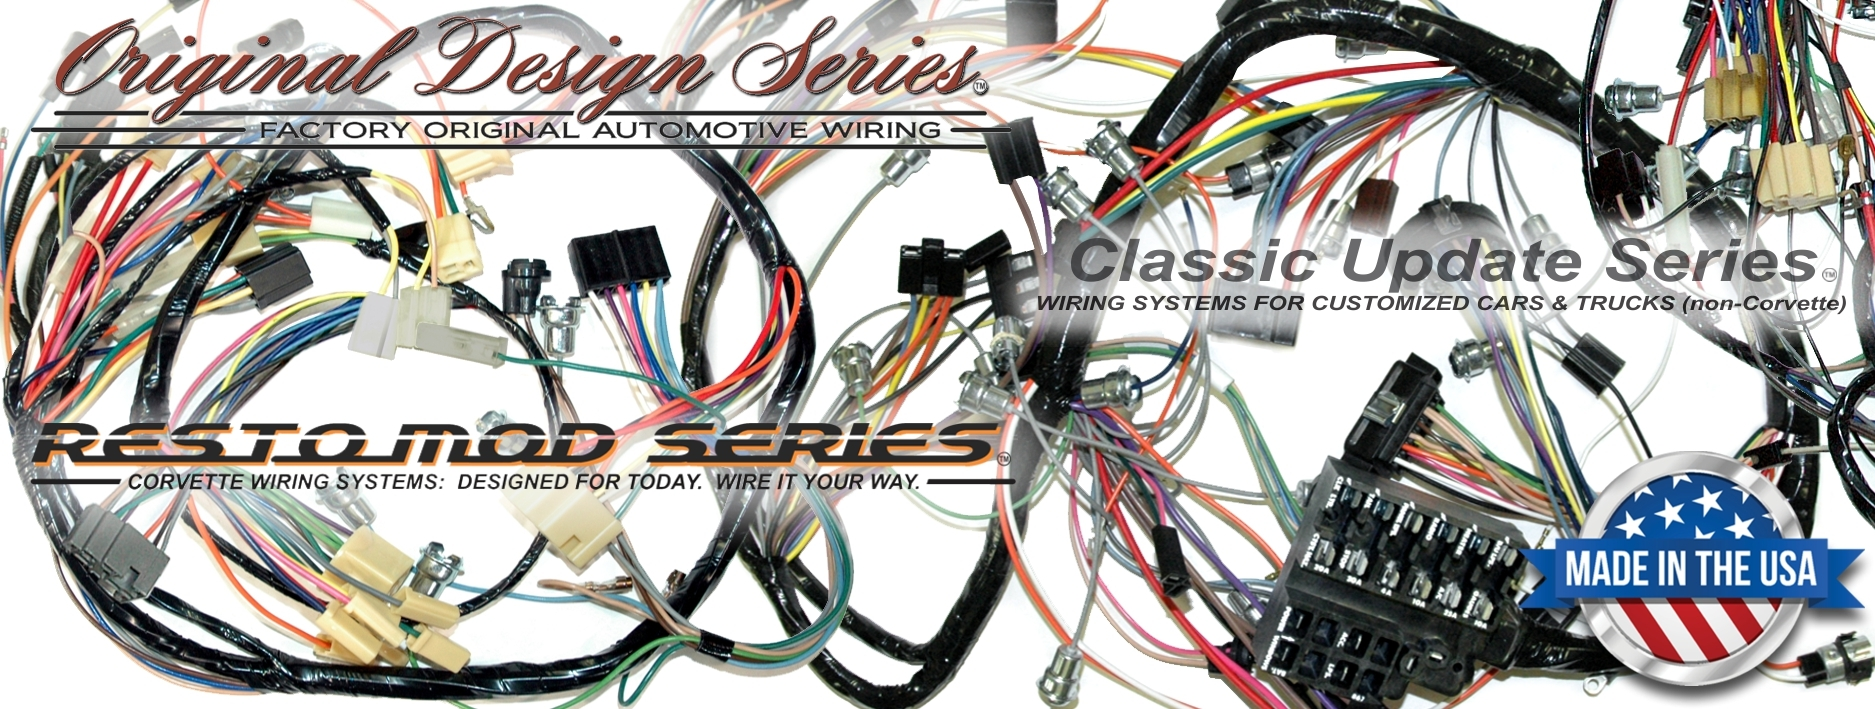 Exact OEM Reproduction Wiring Harnesses and RestoMod Wiring Systems on electrical harness, maxi-seal harness, suspension harness, pony harness, fall protection harness, alpine stereo harness, battery harness, obd0 to obd1 conversion harness, radio harness, cable harness, safety harness, pet harness, amp bypass harness, engine harness, dog harness, nakamichi harness, oxygen sensor extension harness,